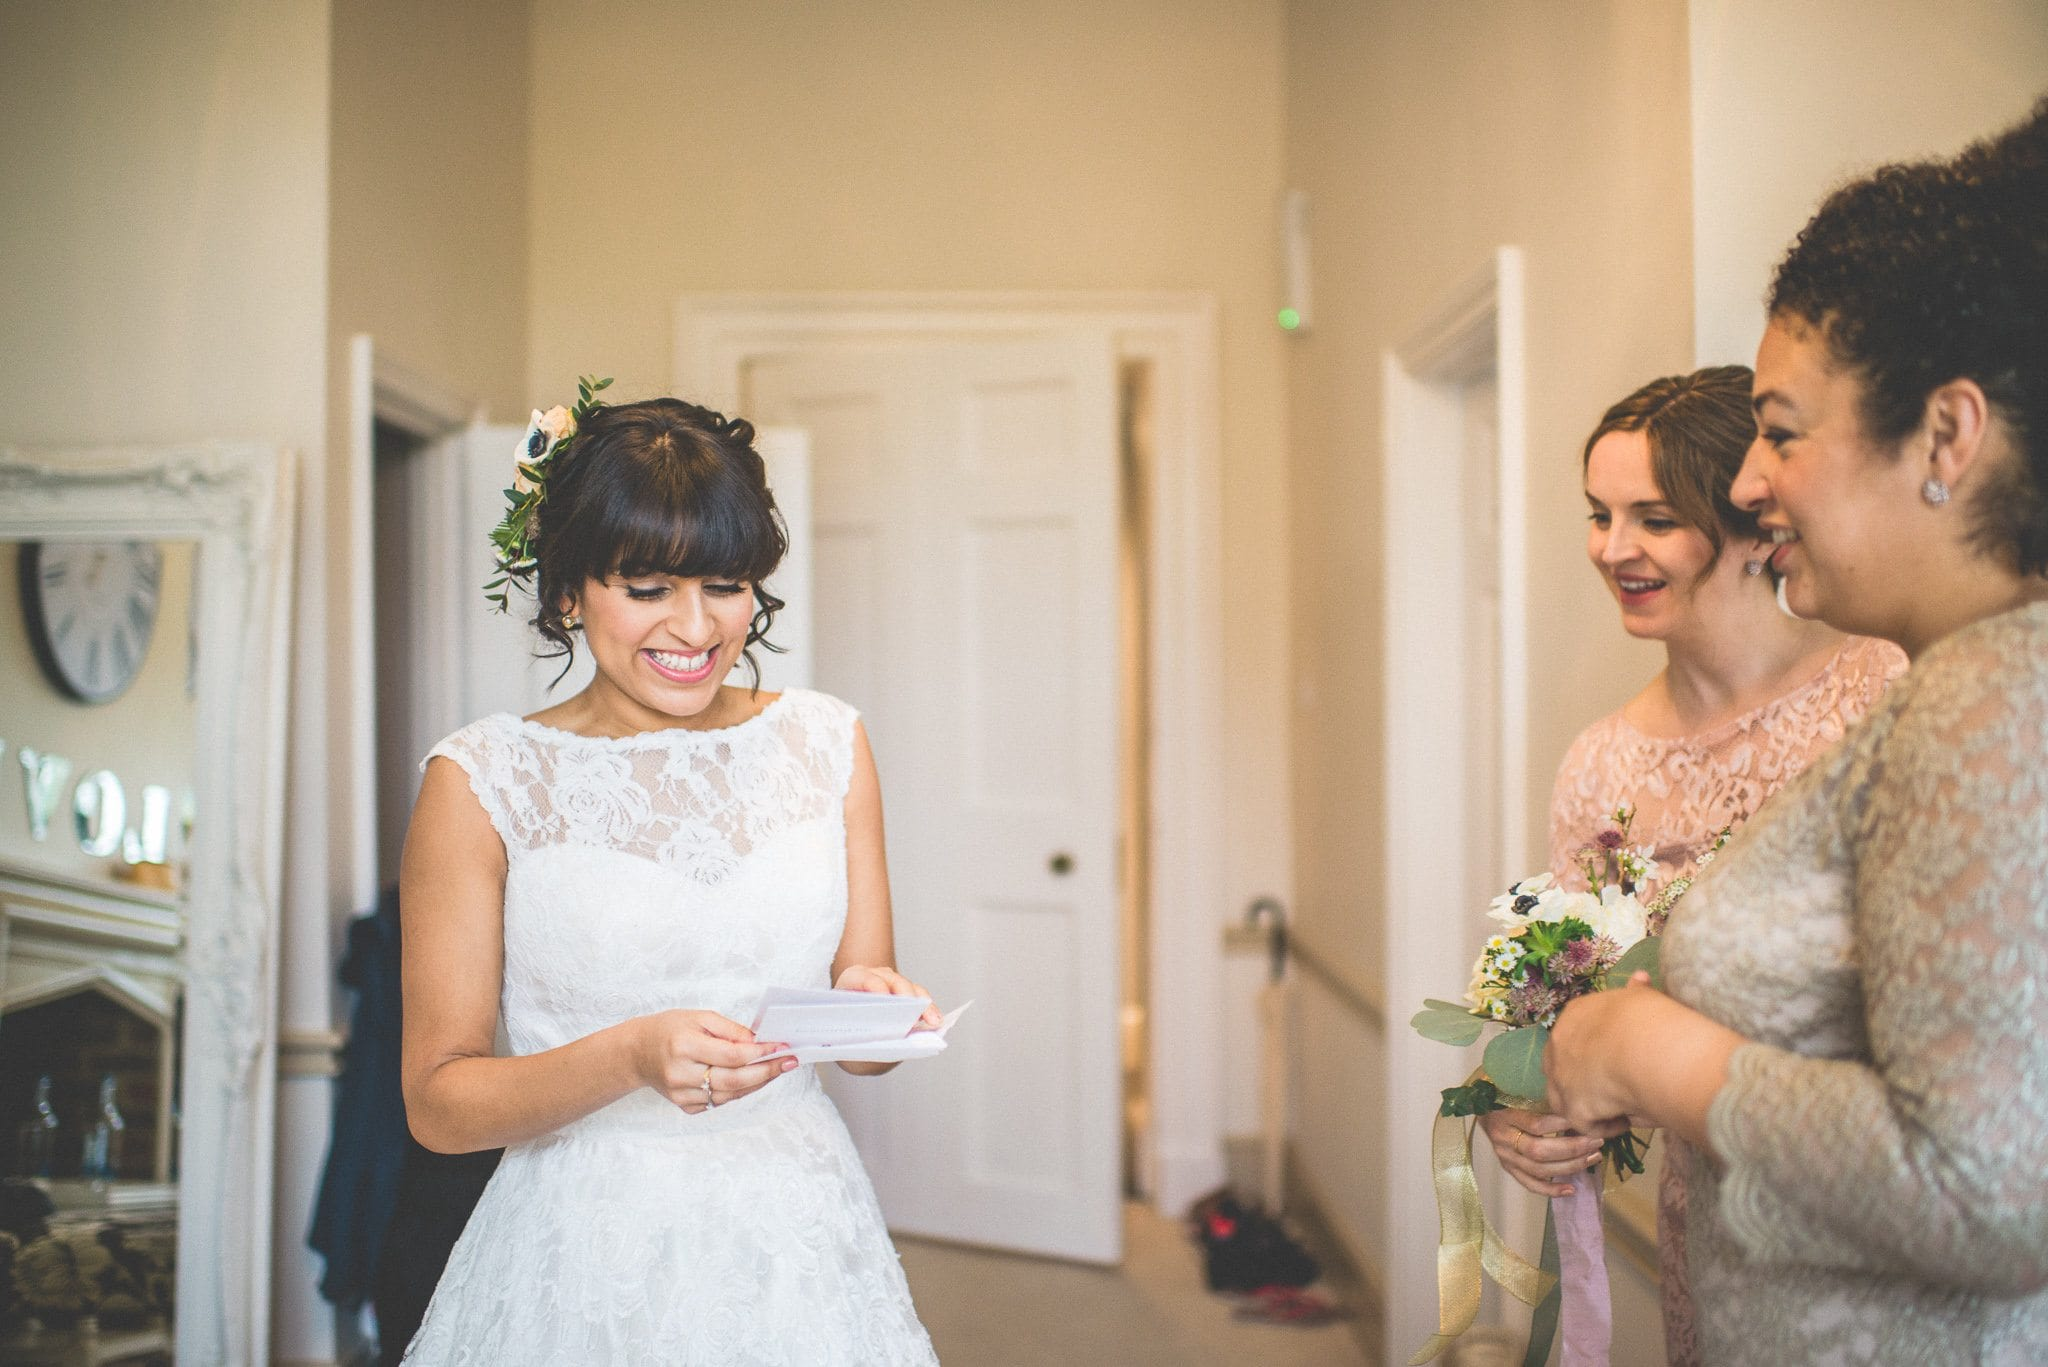 Jasmin smiles while reading a message from her groom as two of her bridesmaids look on